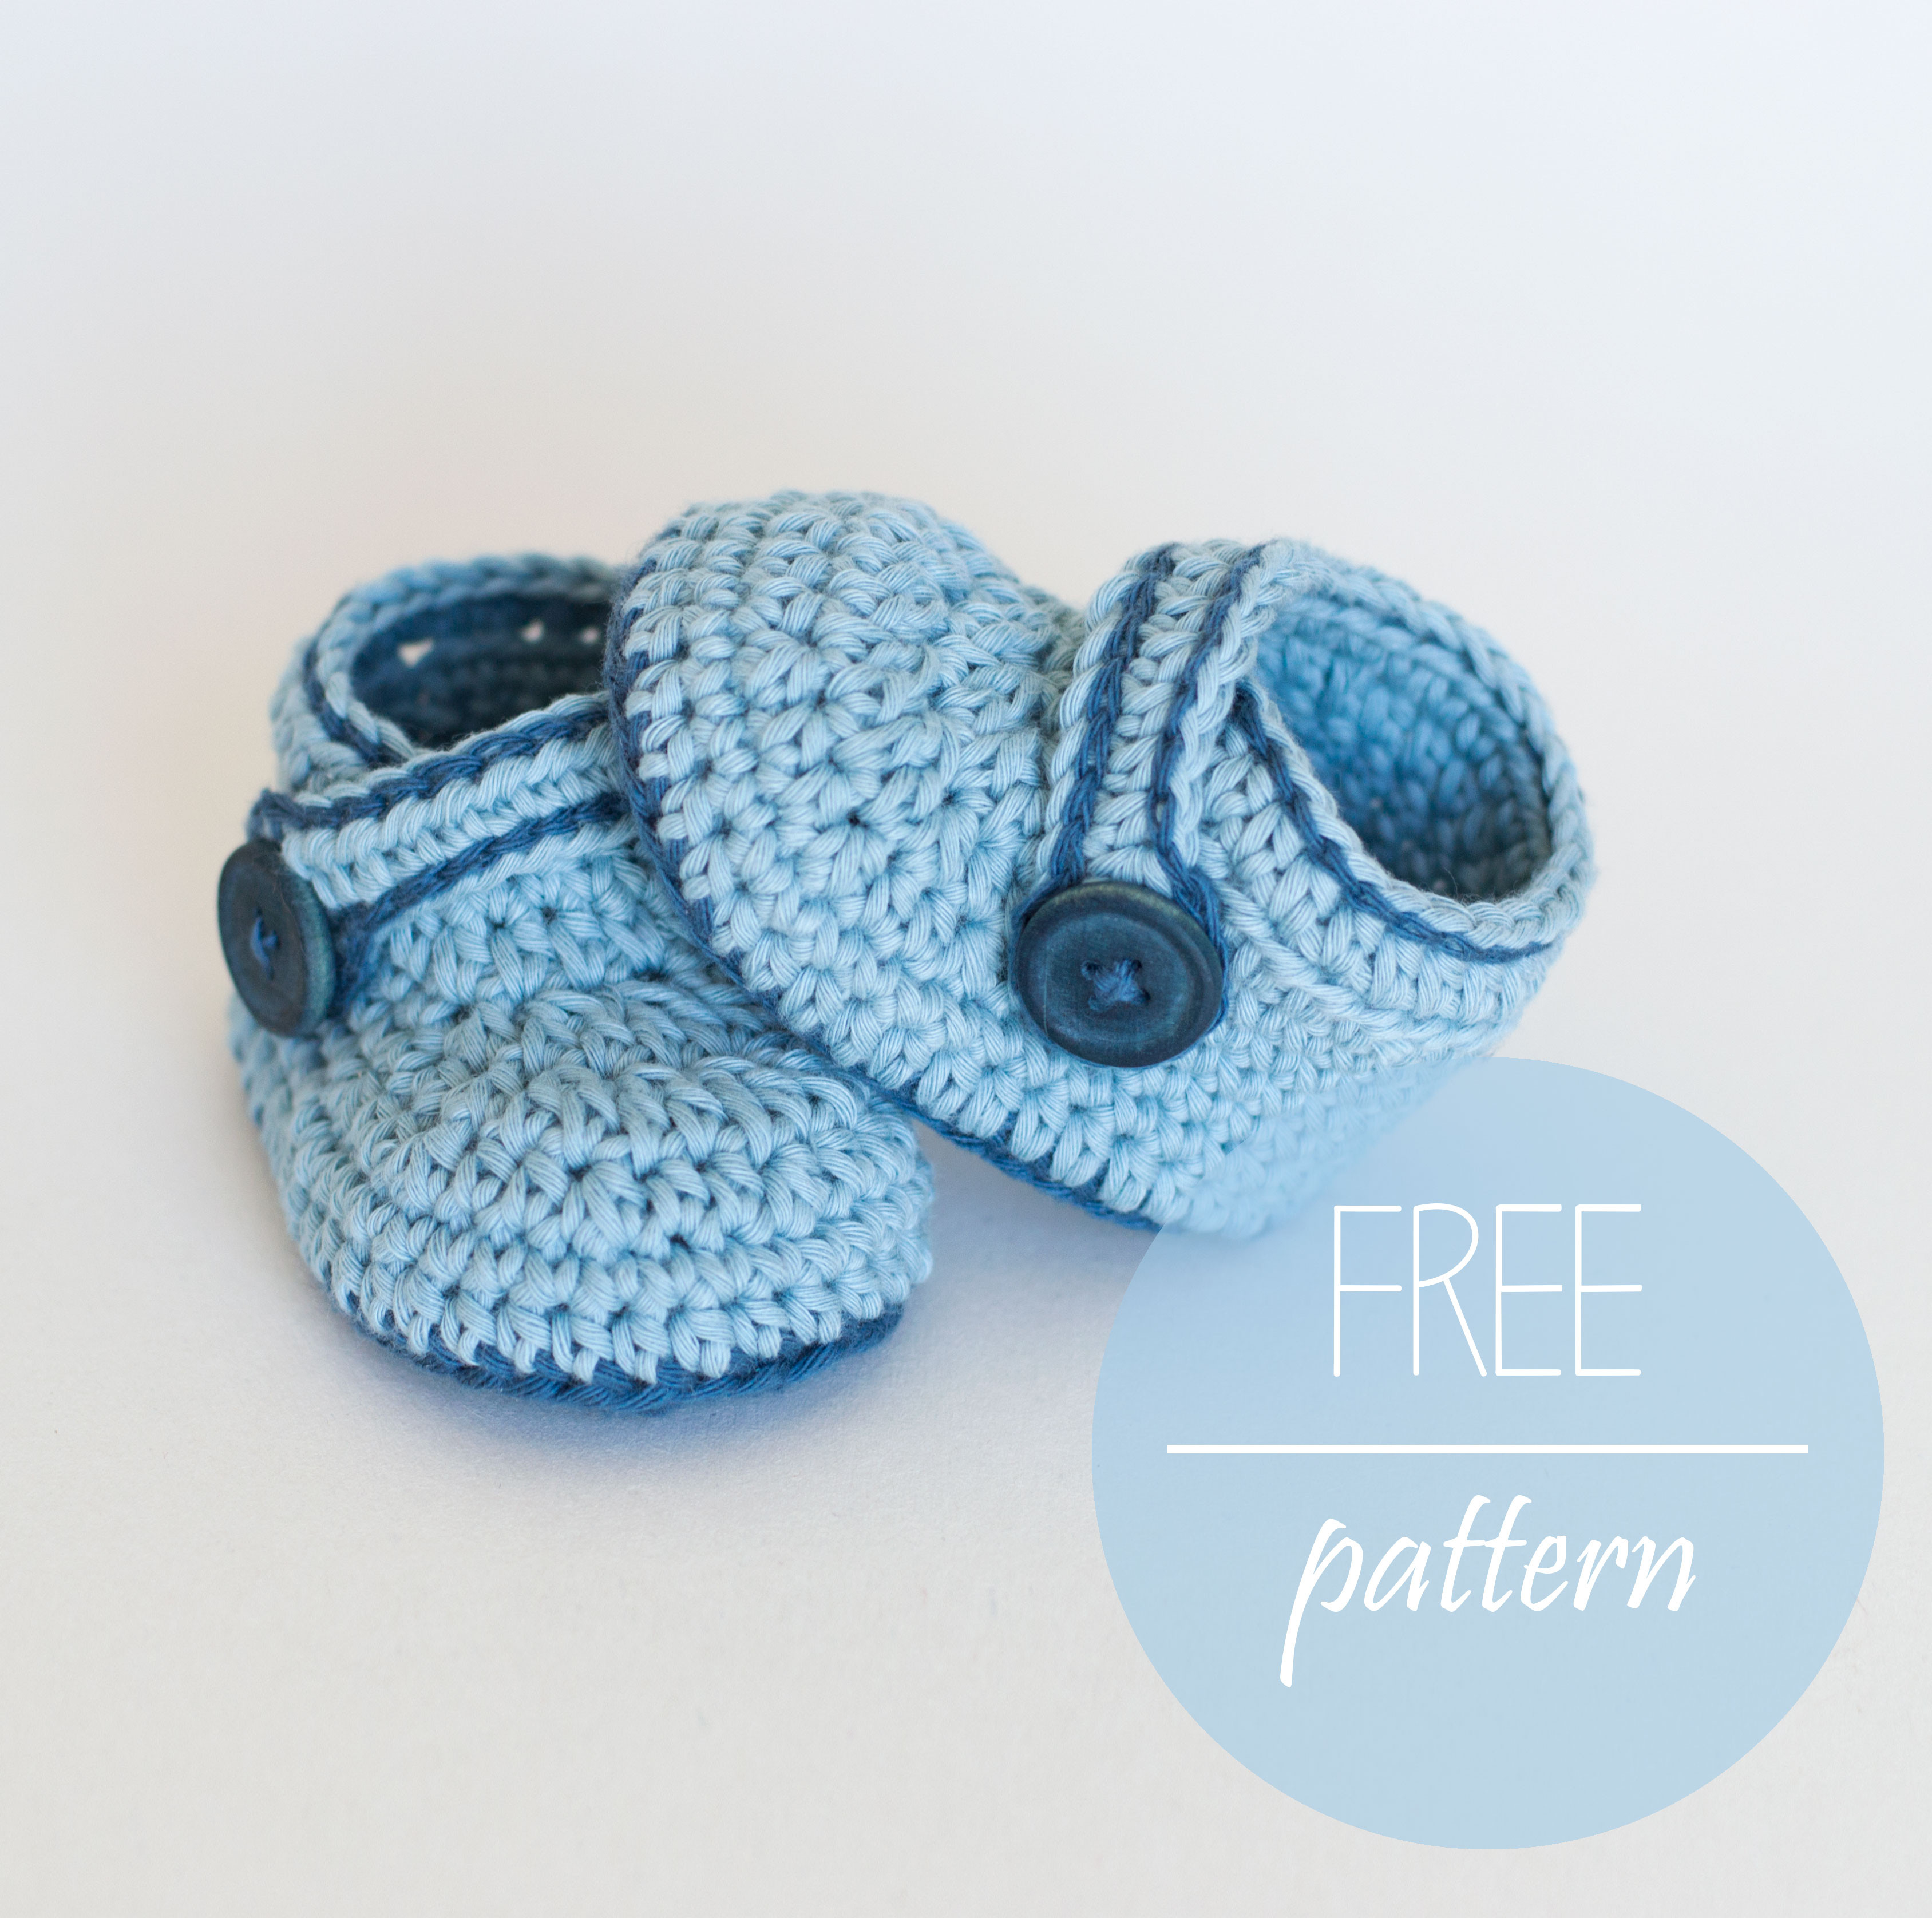 Newborn Crochet Patterns Lovely Free Crochet Pattern – Blue Whale – Croby Patterns Of Incredible 41 Ideas Newborn Crochet Patterns